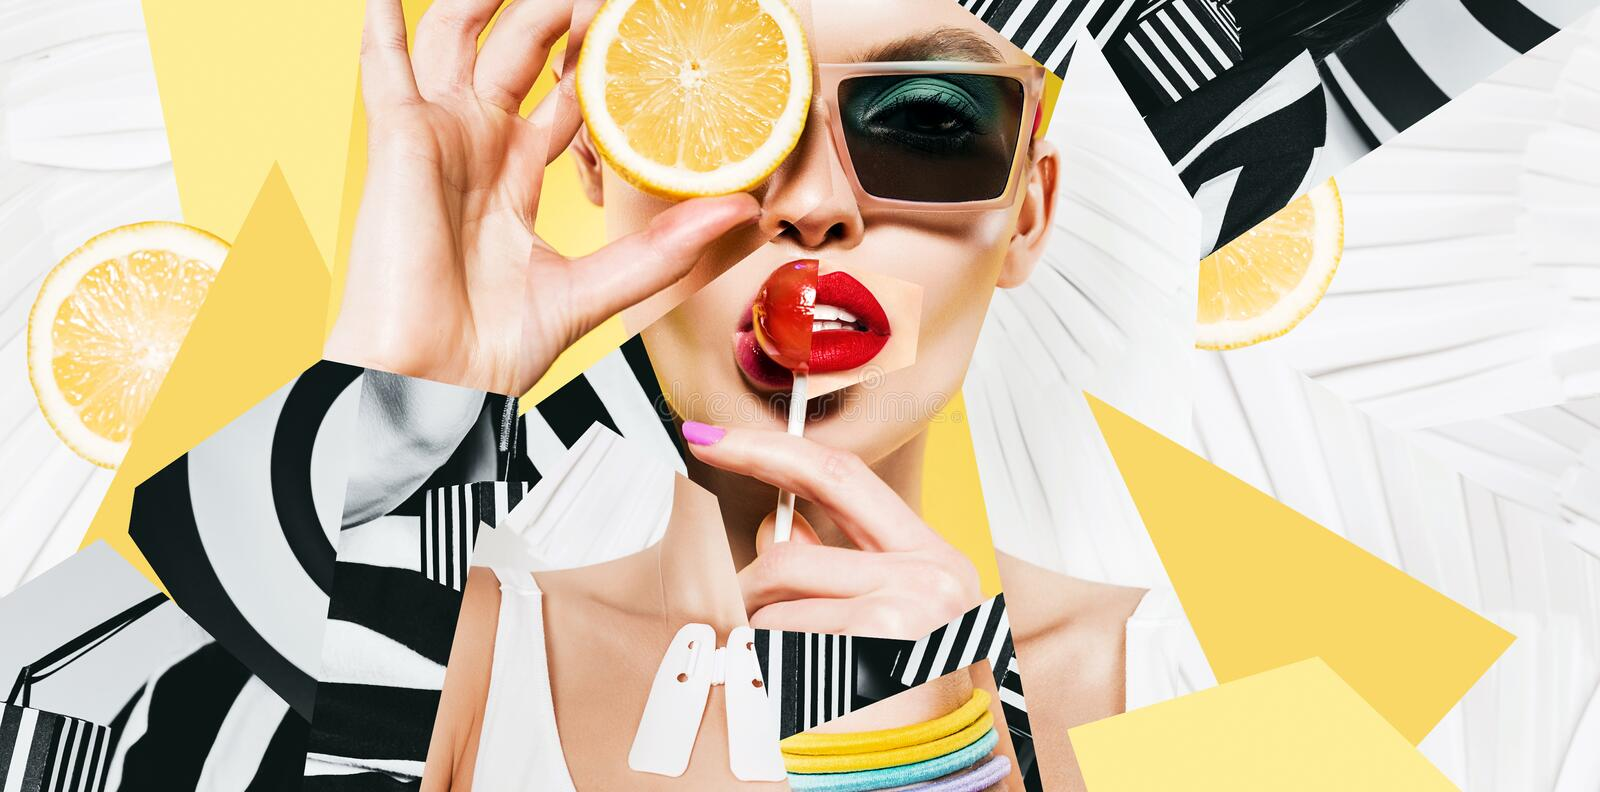 Composition of women in sunglasses with lollipop and lemon royalty free stock photography